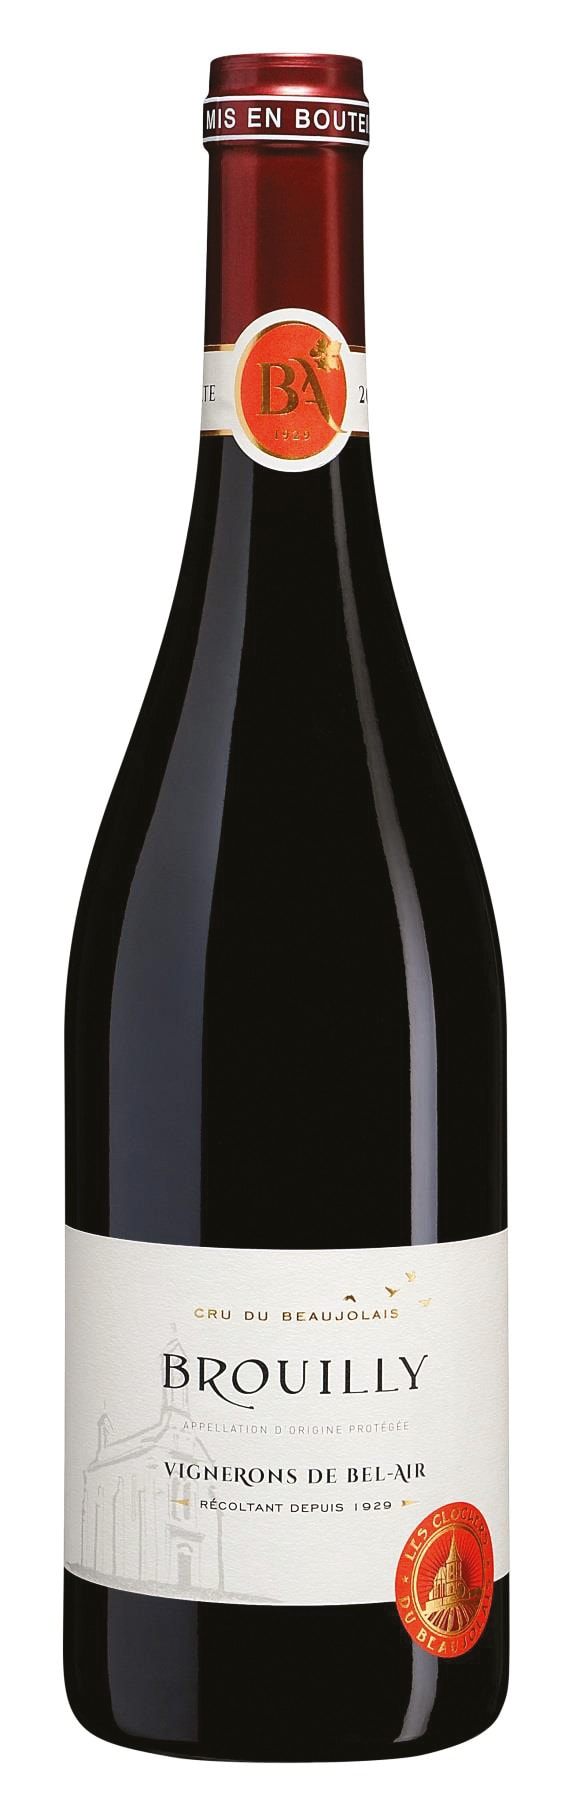 Brouilly AOP